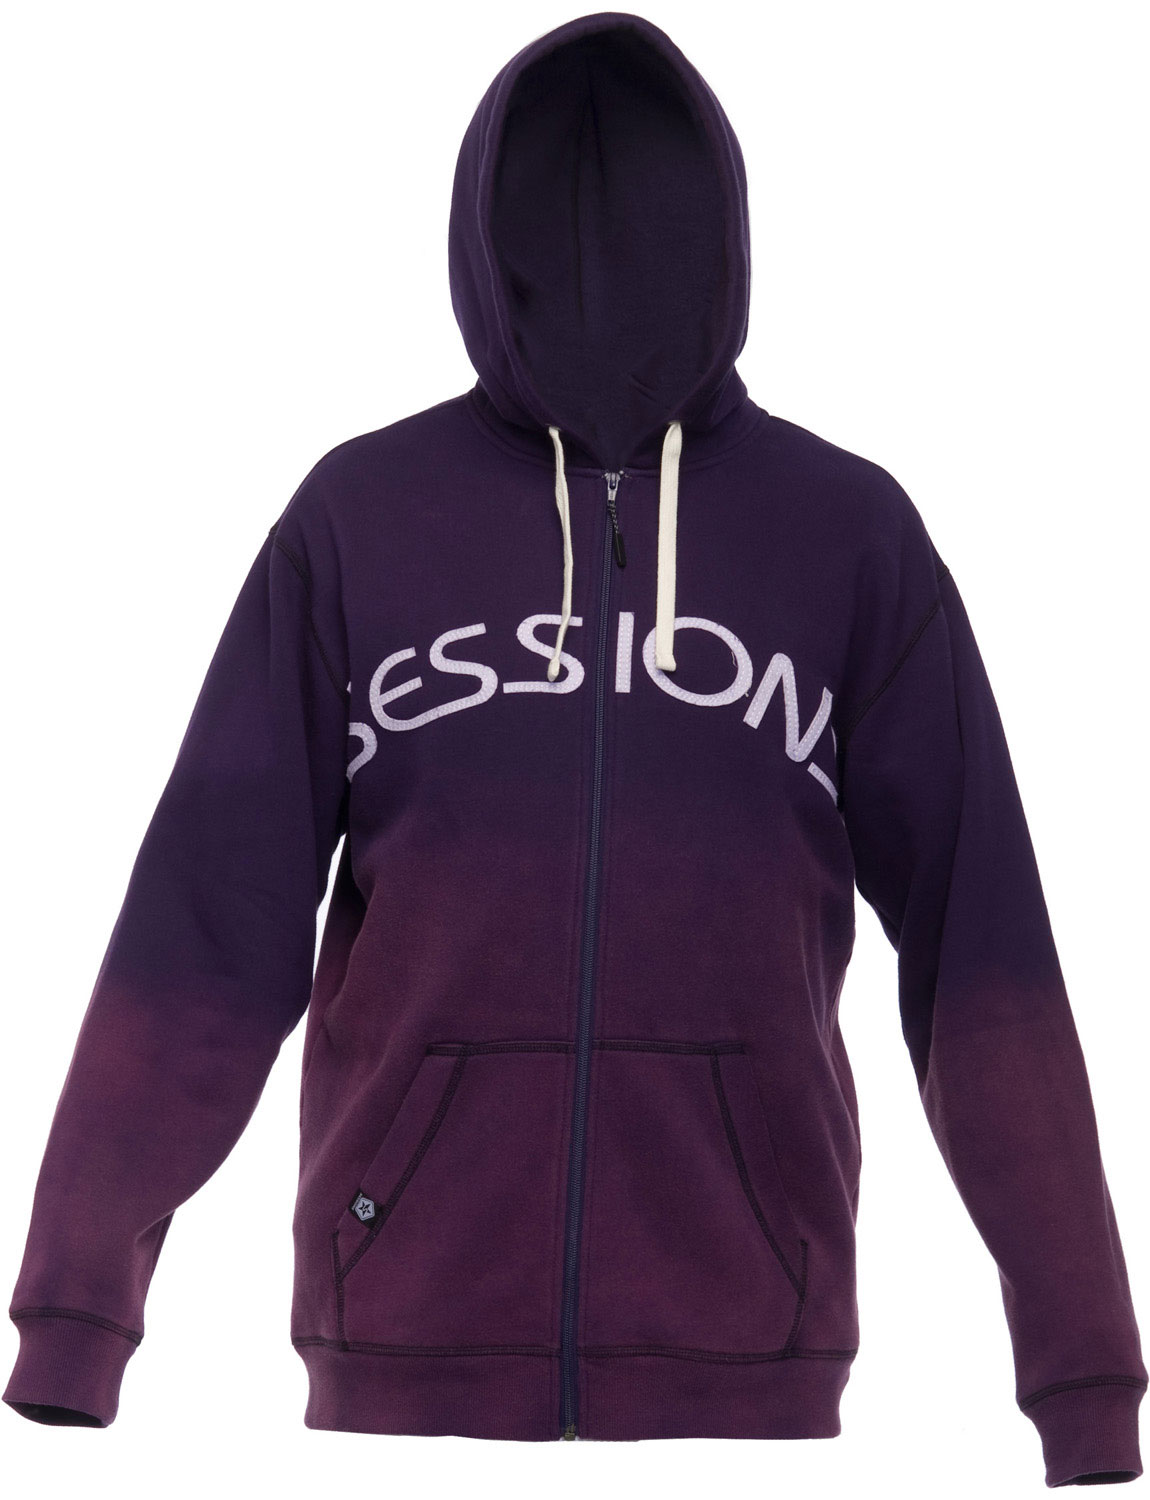 The Sessions Freshman Hoodie. Men's Fleece-Lined Hoodie w/ Felt Patch-On Lettering. - $28.95